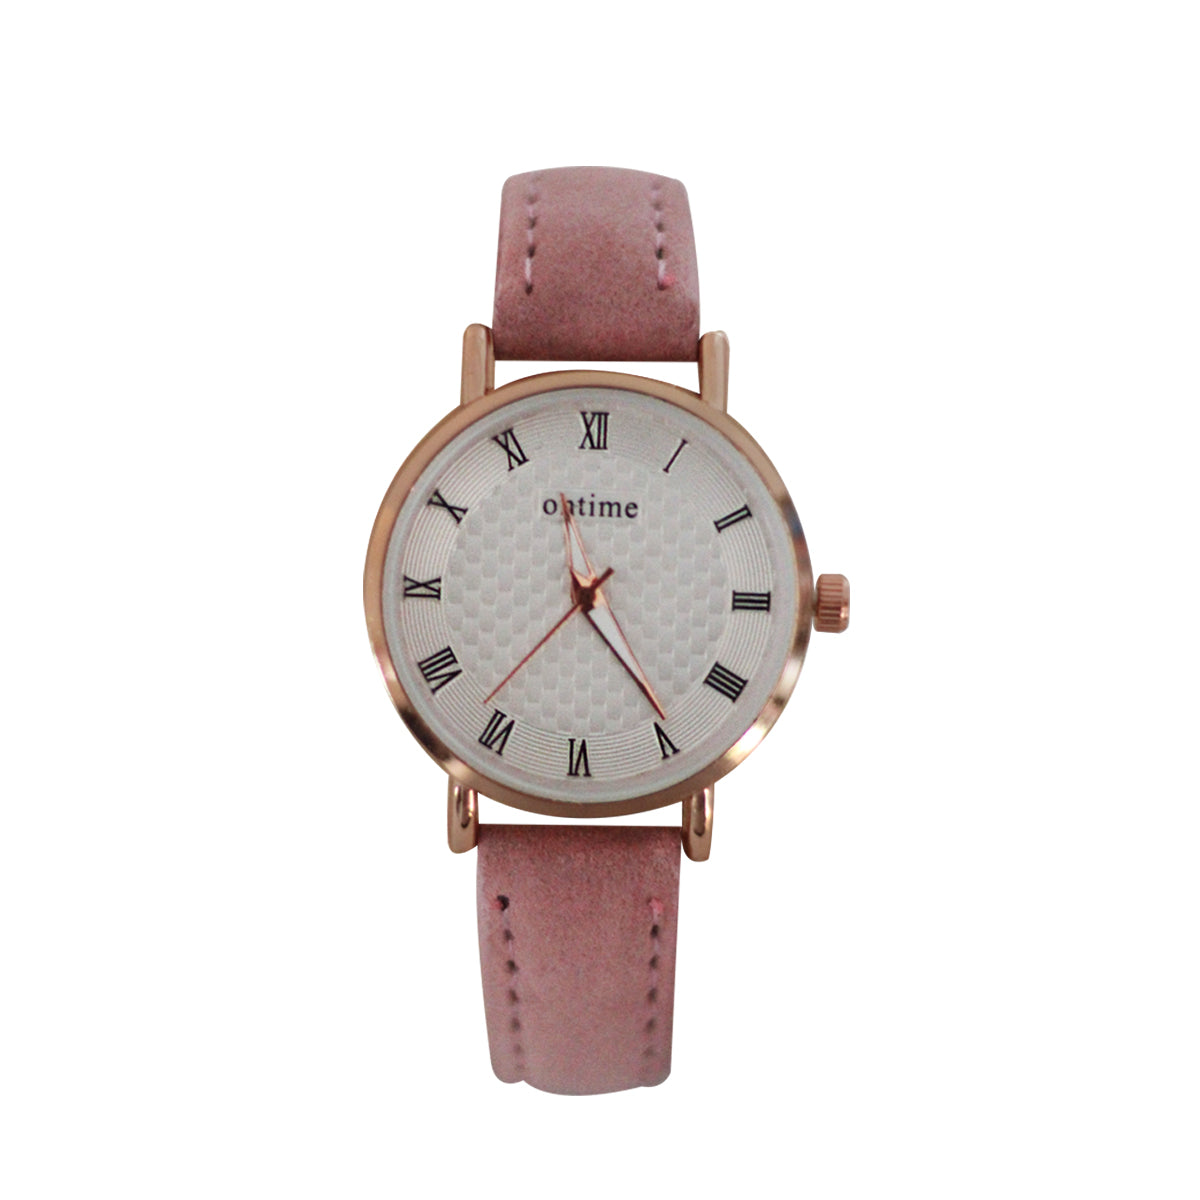 Ontime Casual Analog Microfiber Watch For Women - Pink